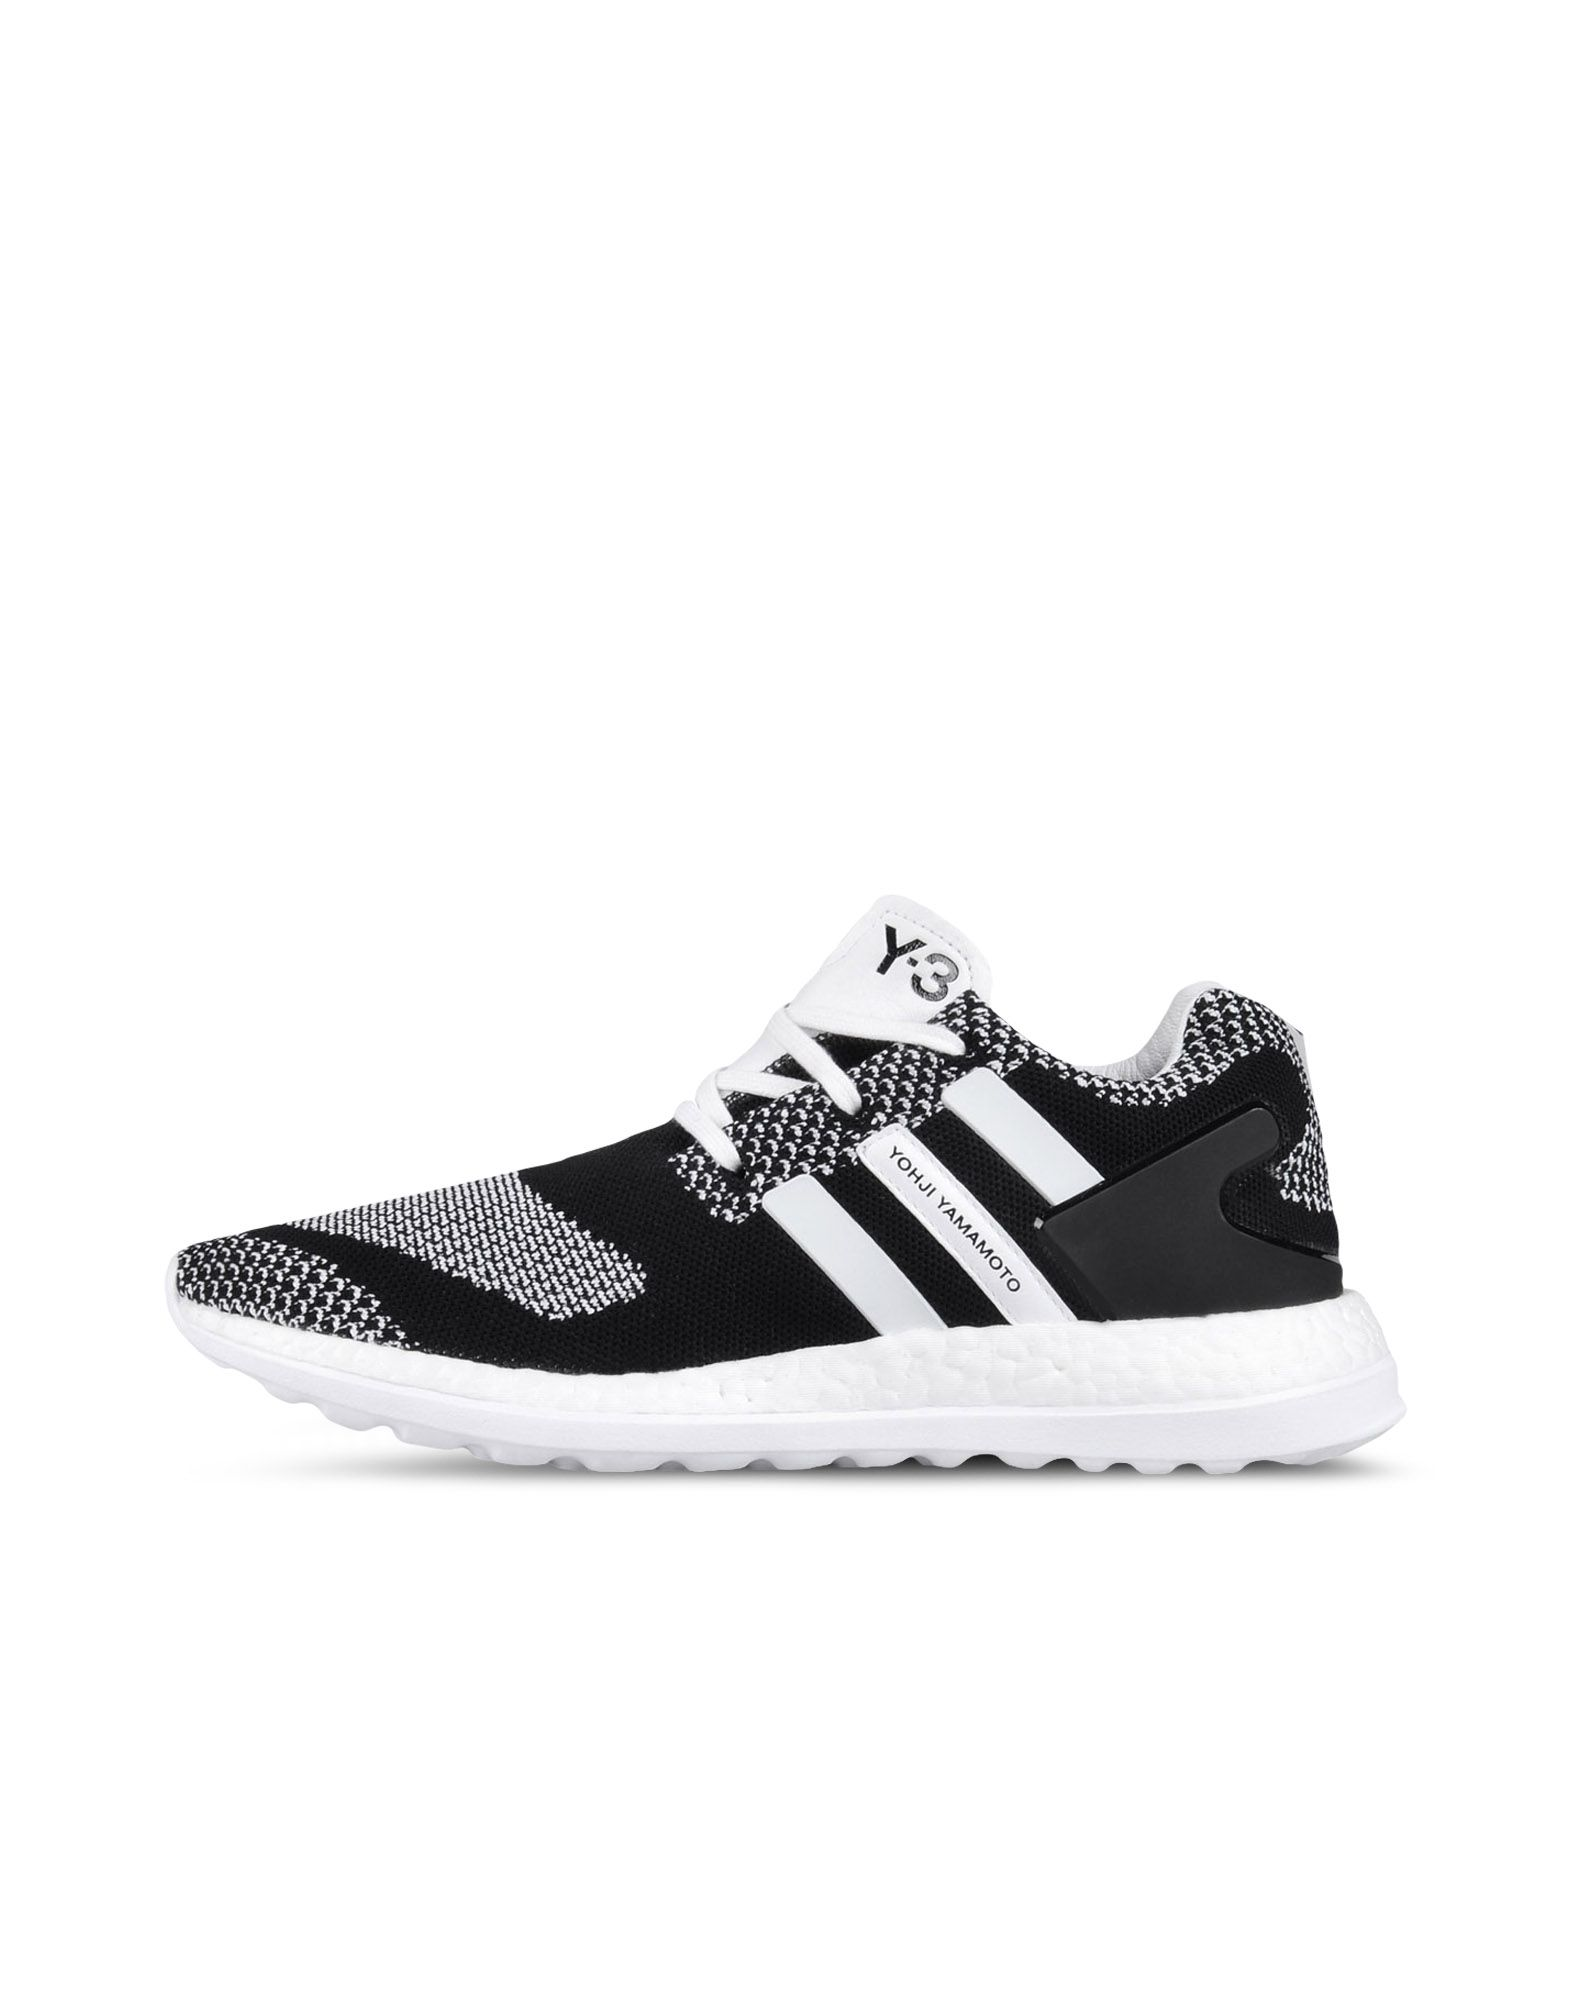 7127a96a81a17 Y 3 PURE BOOST ZG KNIT Sneakers | Adidas Y-3 Official Site